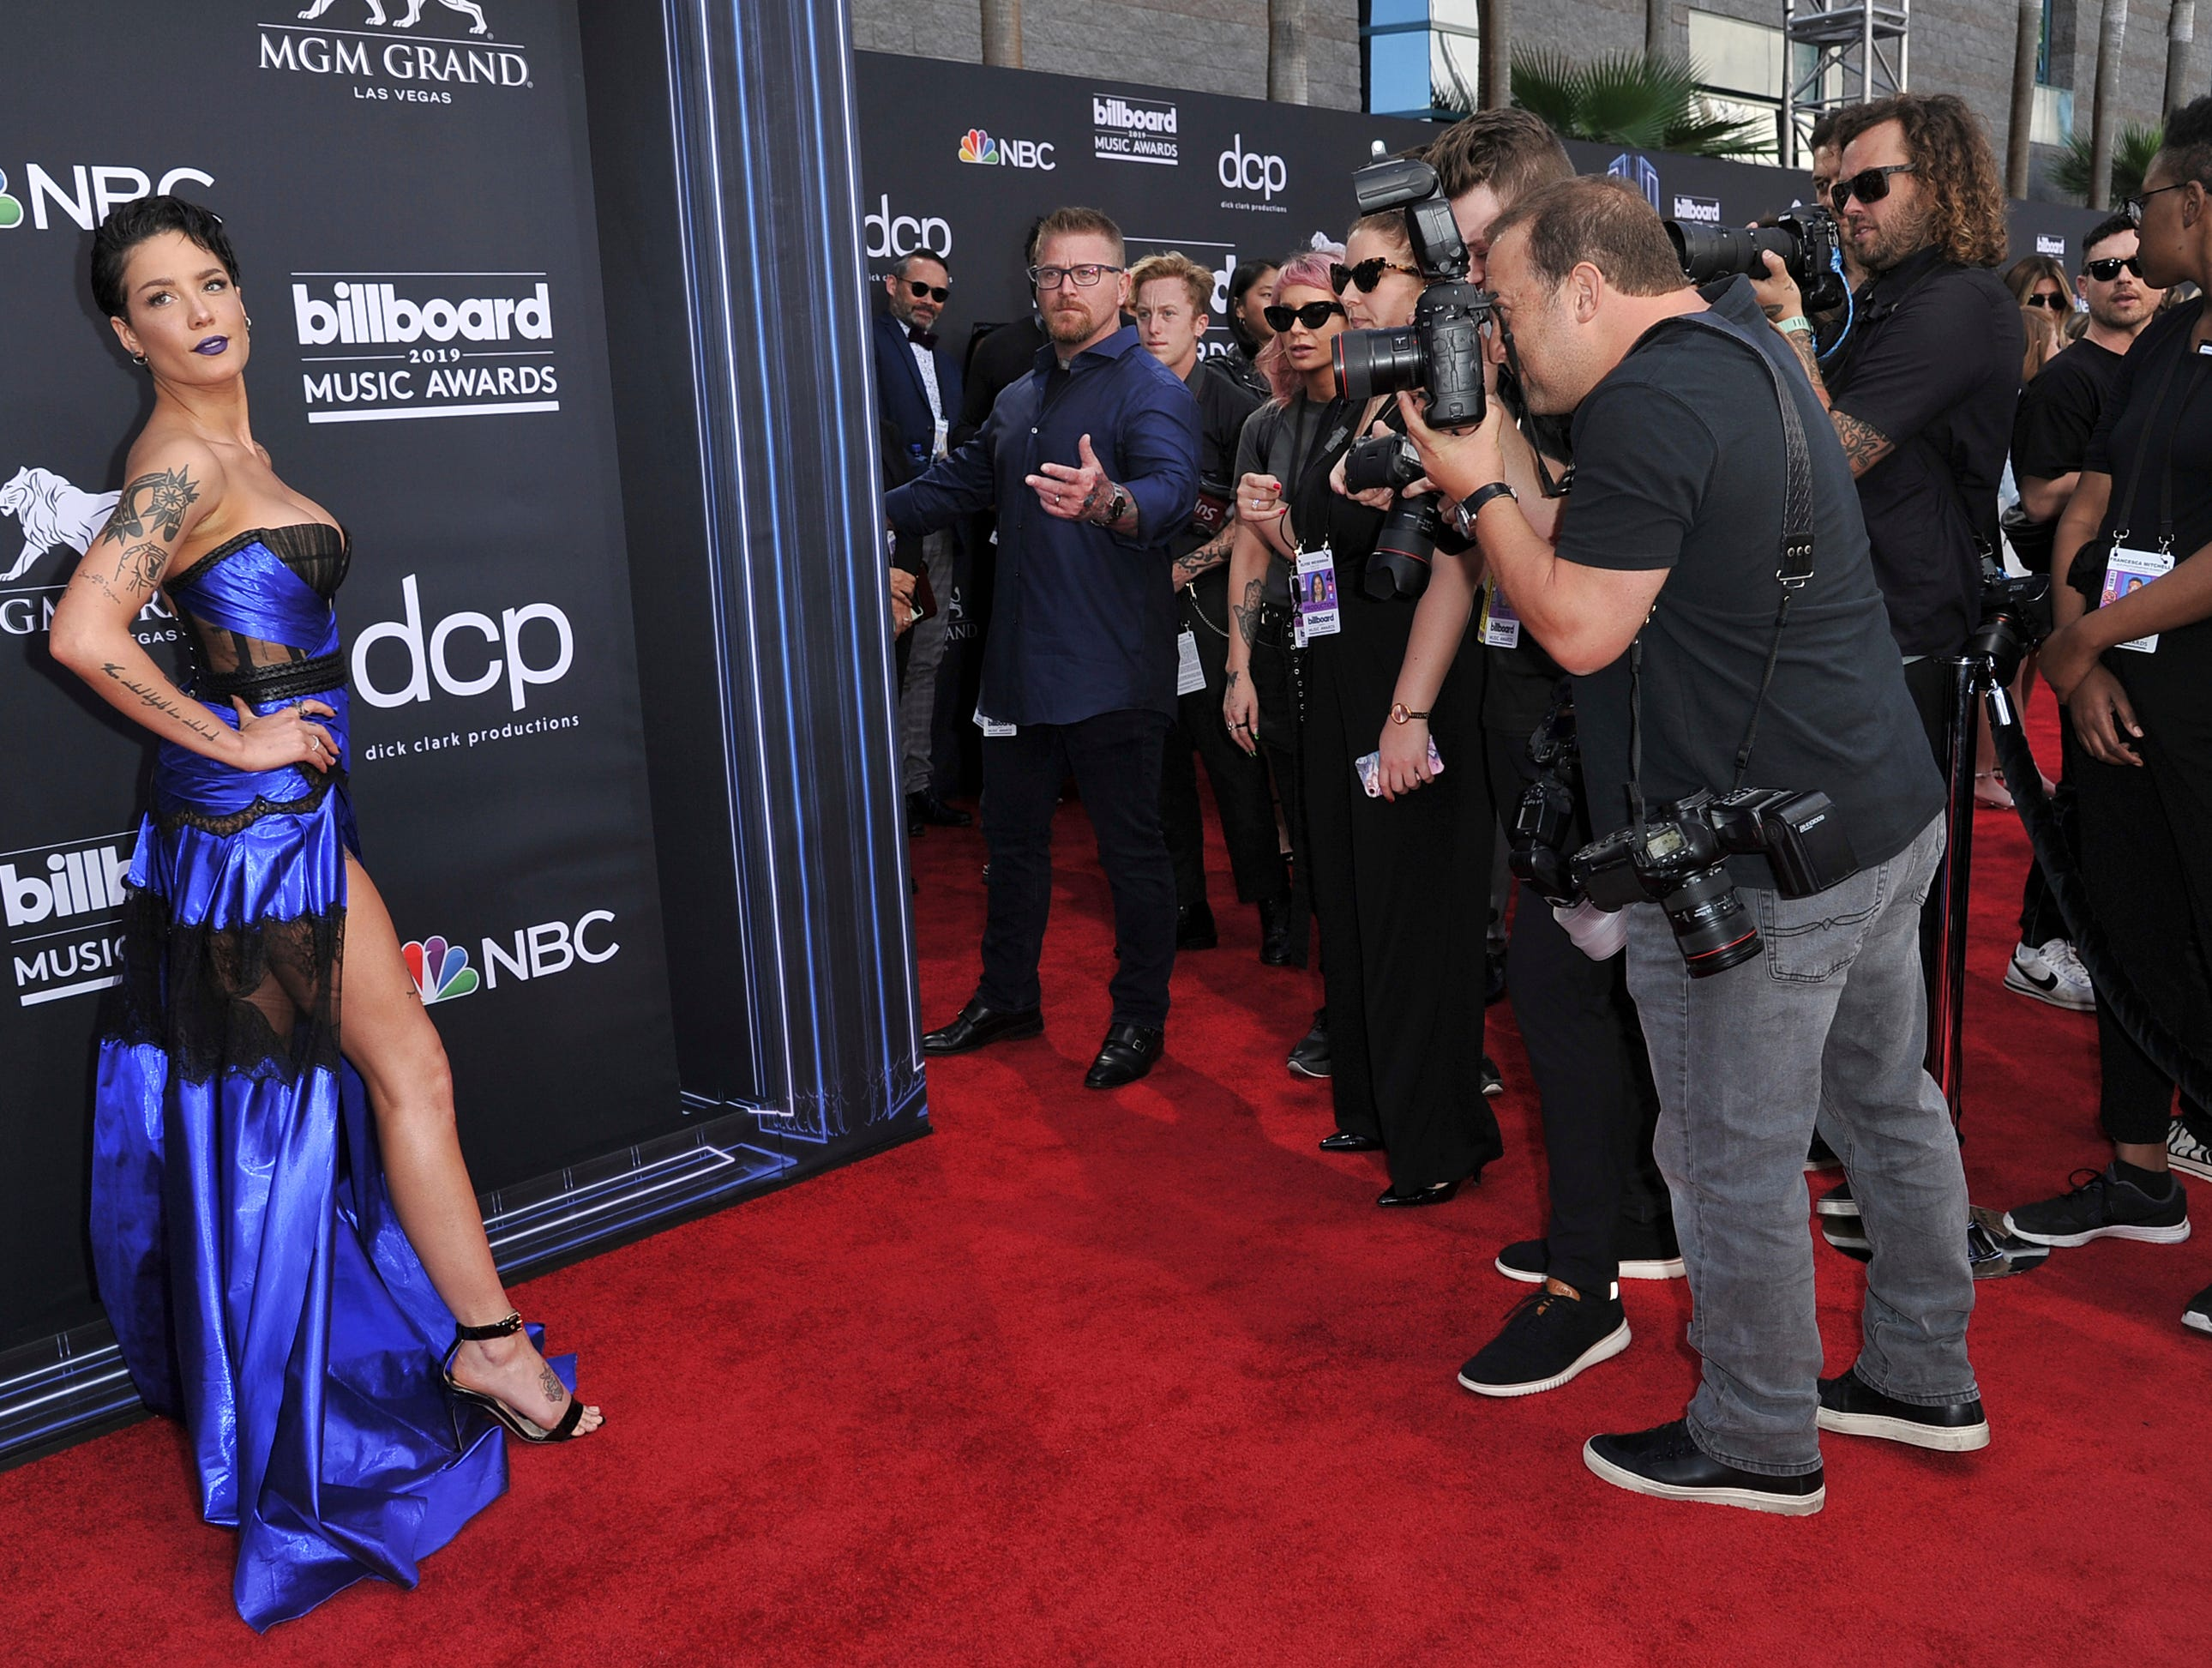 Halsey arrives at the Billboard Music Awards on Wednesday, May 1, 2019, at the MGM Grand Garden Arena in Las Vegas.